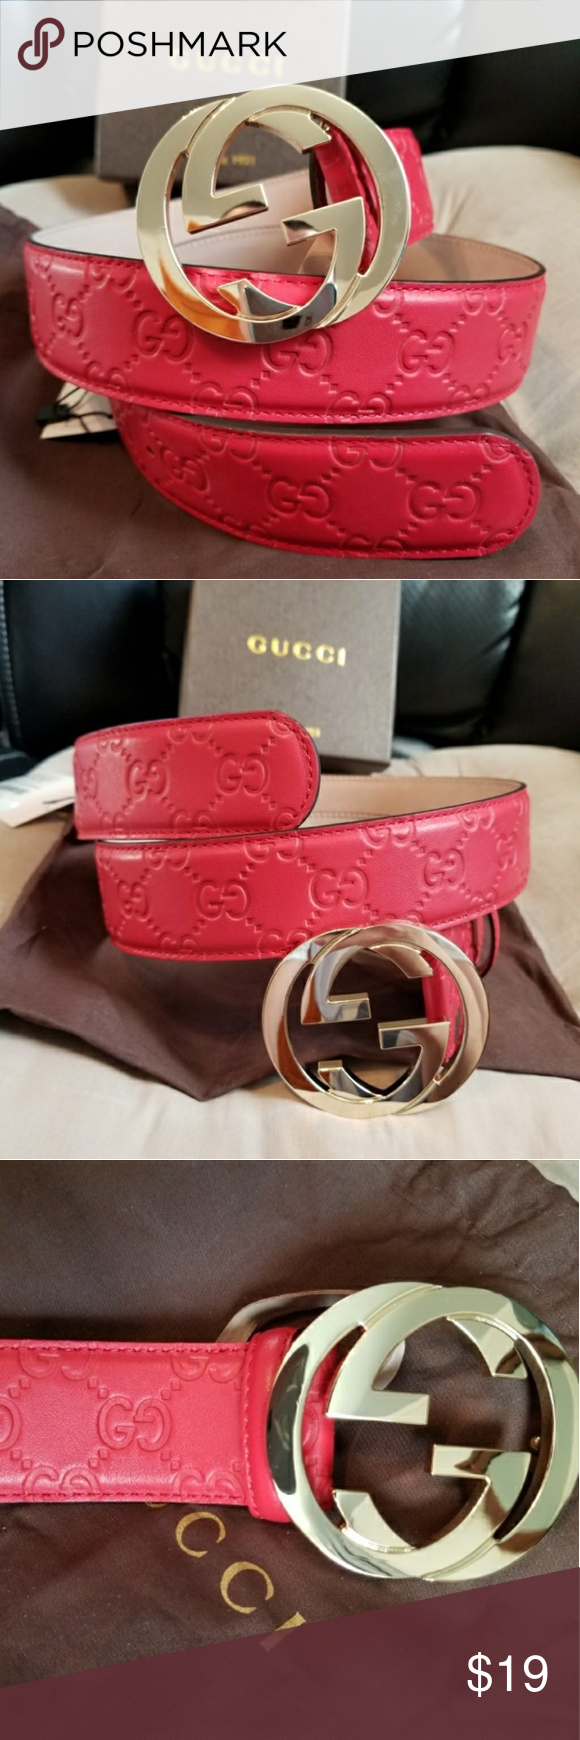 7f56e466517 😉Authentic Gucci Web Belt Red Guccissima Supreme 😉Authentic Gucci Web Belt  Red Guccissima Print with Gold GG Buckle. Comes with tag